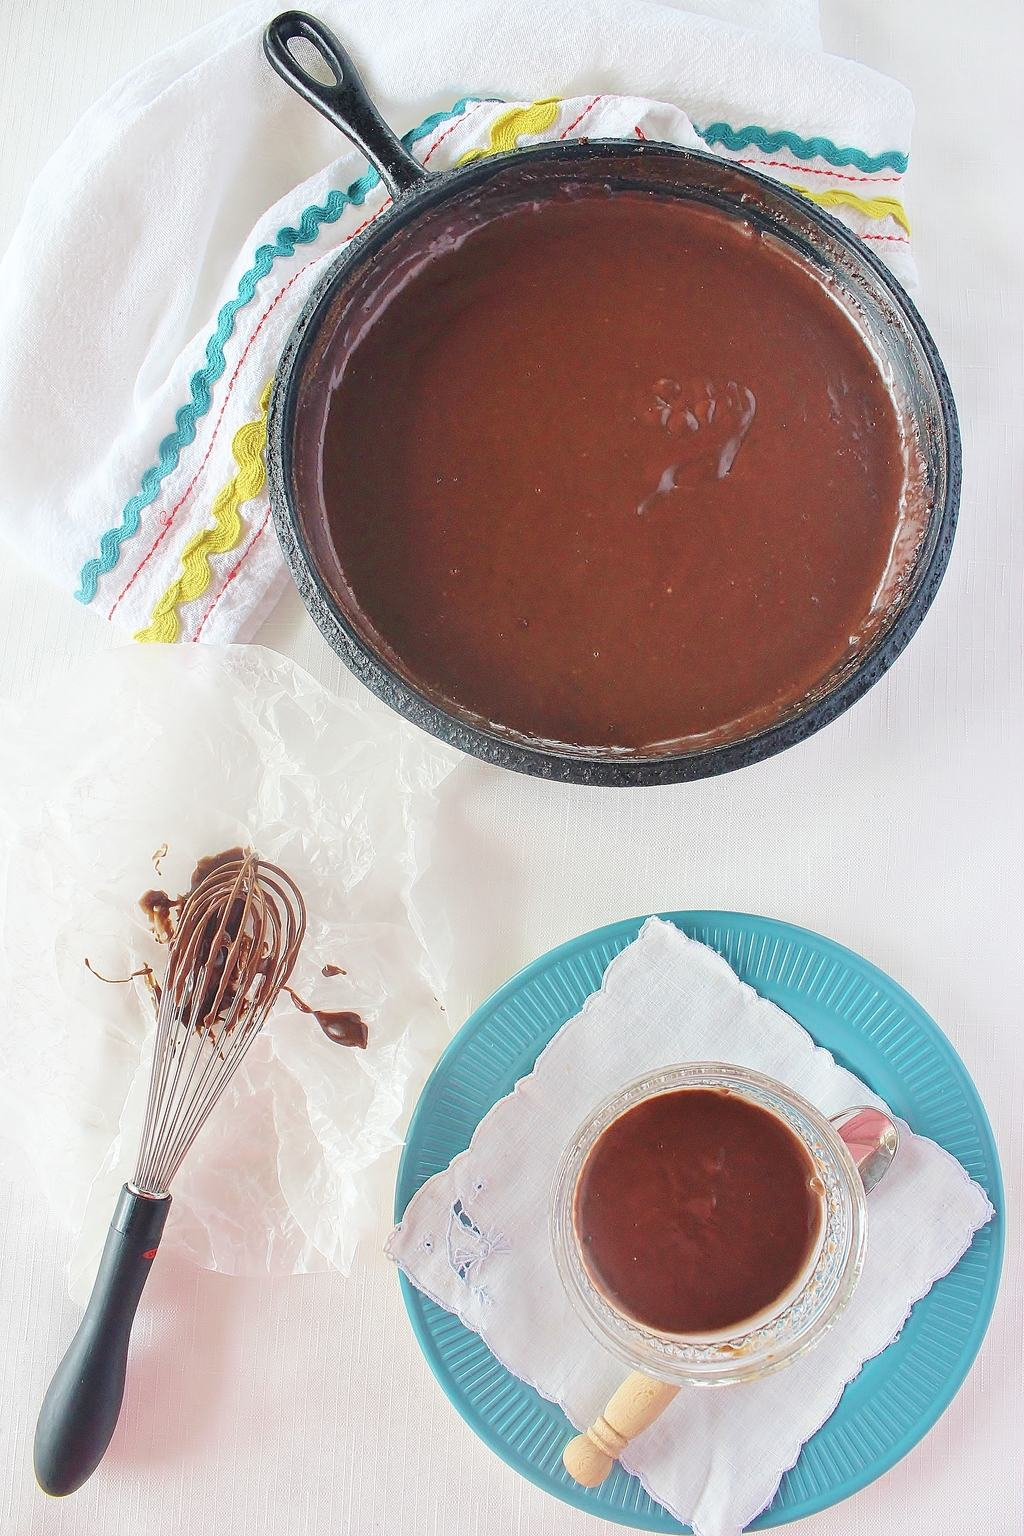 Warm Skillet Chocolate Pudding